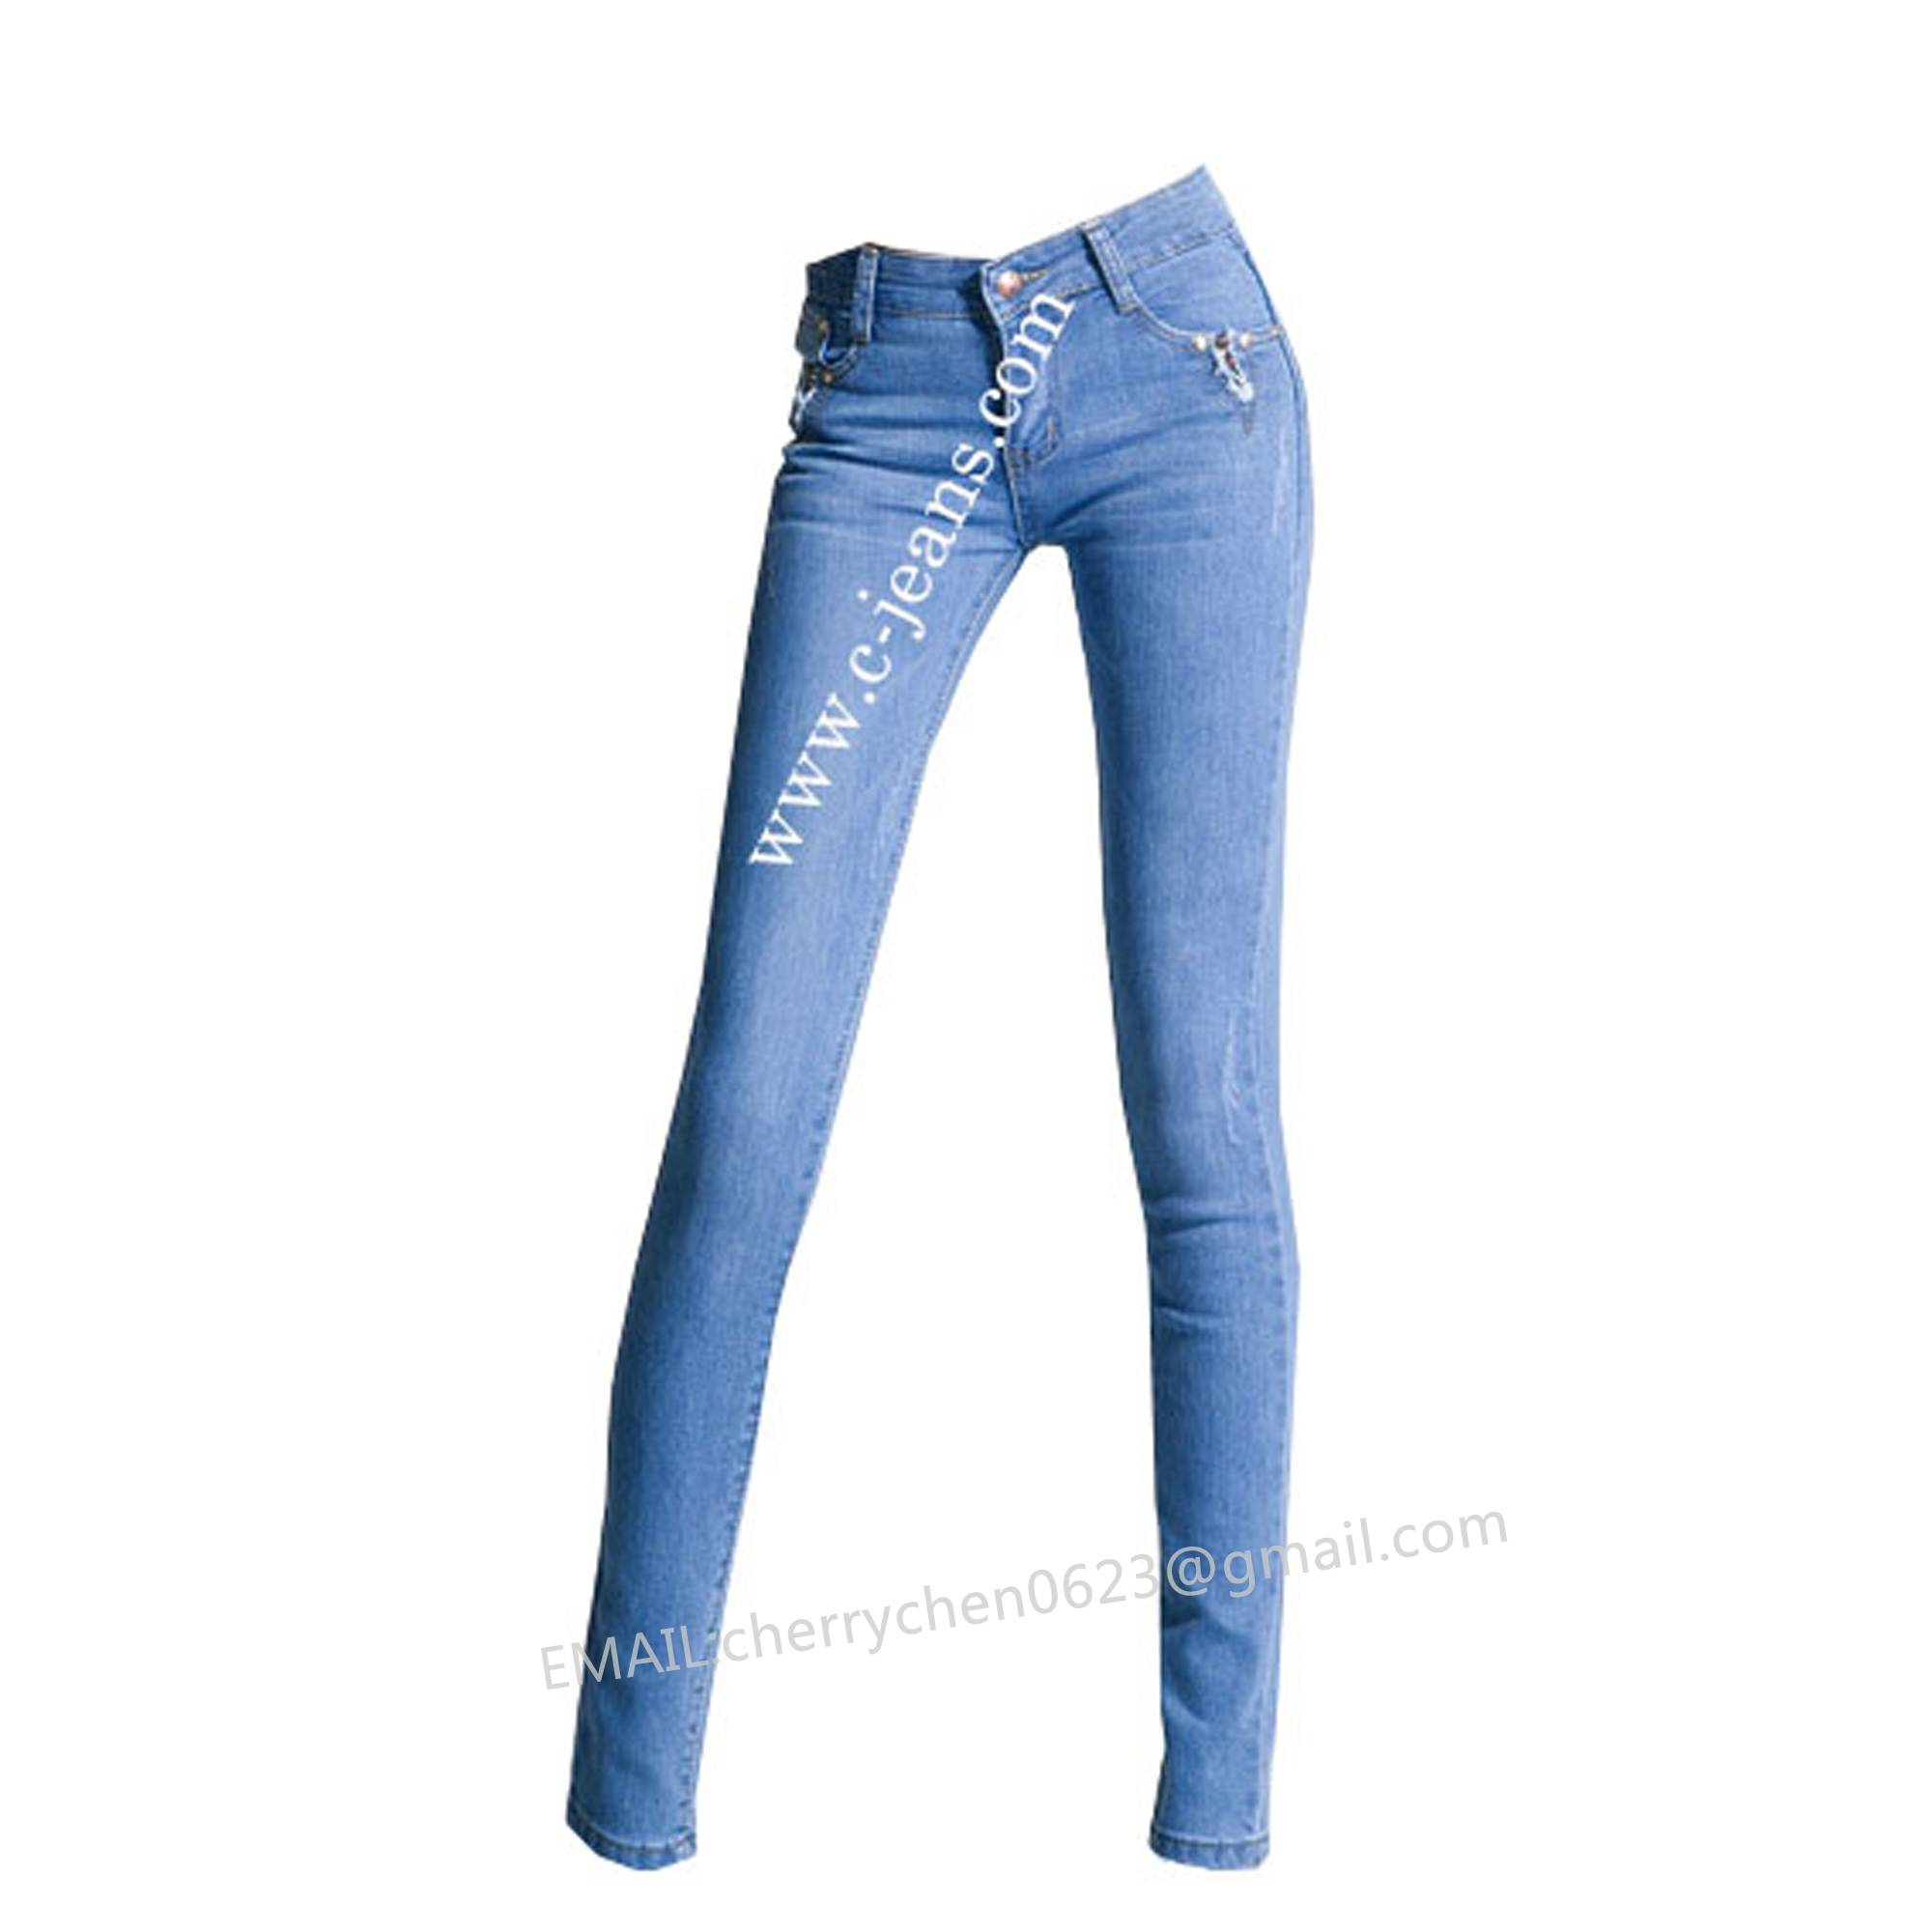 Lady's Stylish Straight Jeans. 2014 Fashion Middle Waist Sexy Woman Jean